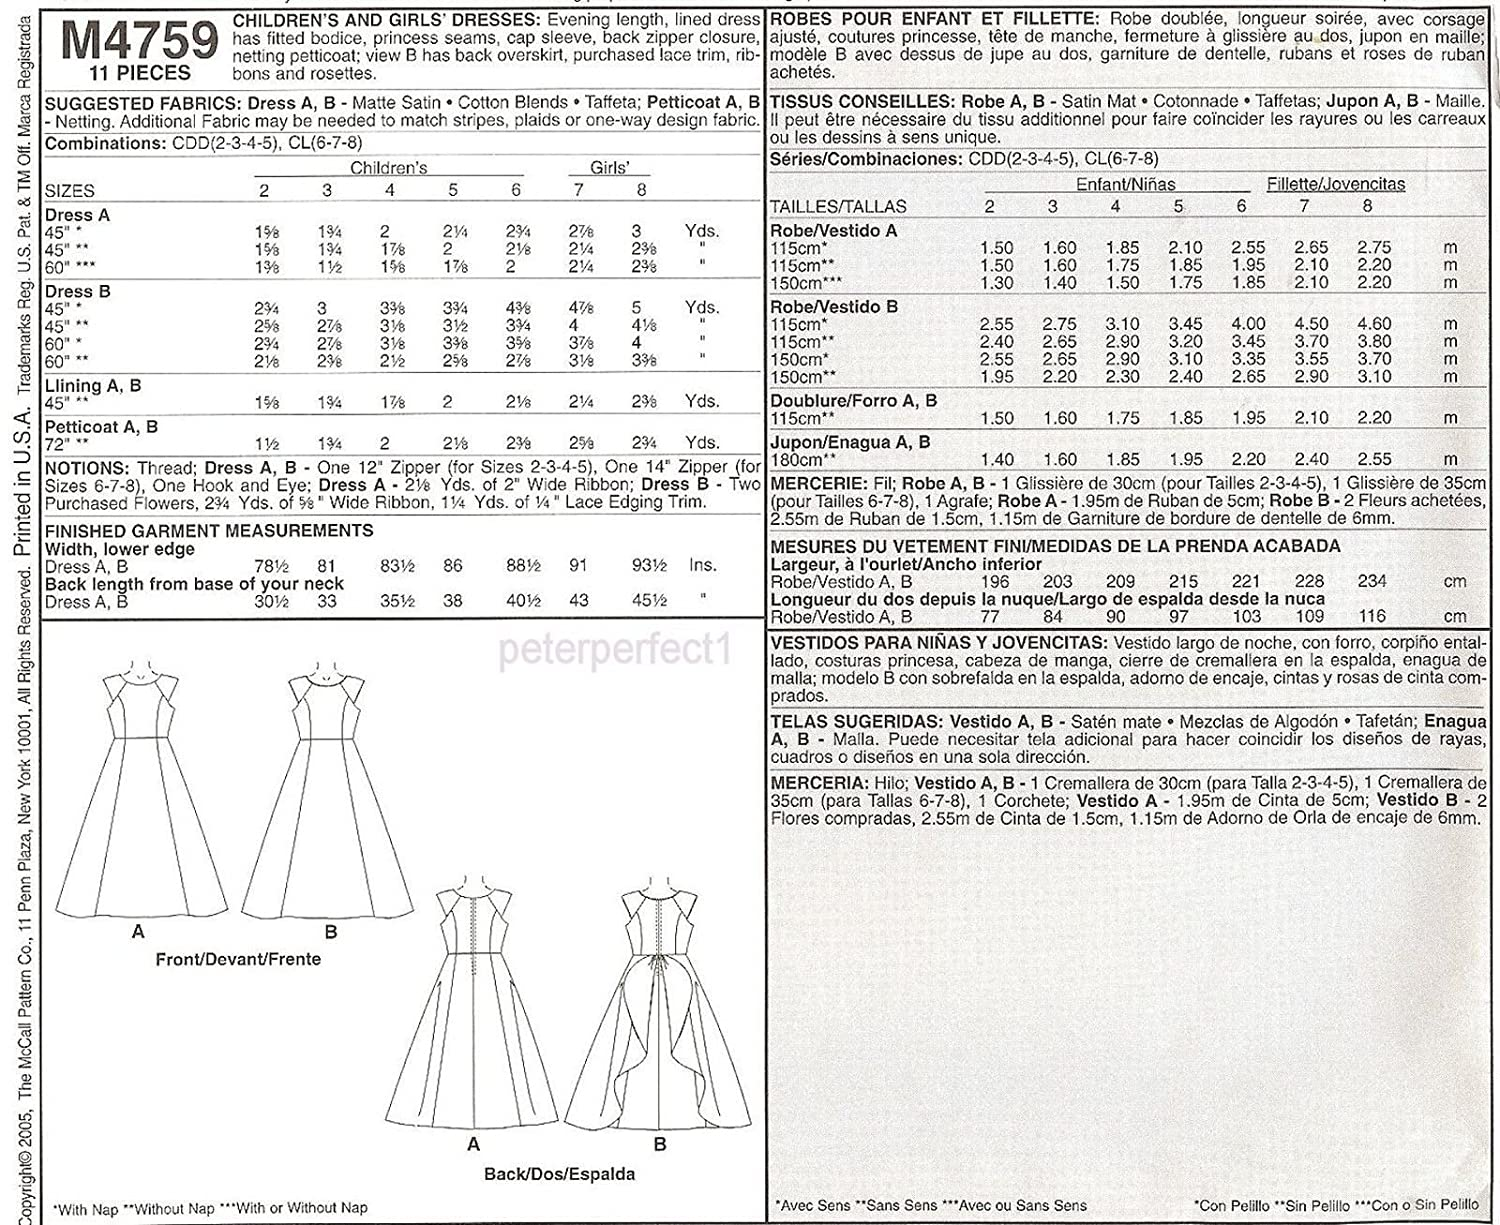 Amazon.com: Mccalls 4759 Special Moments, Flower Girl Dress Gown Sz2-3-4-5 Uncut Sewing Pattern: Home & Kitchen